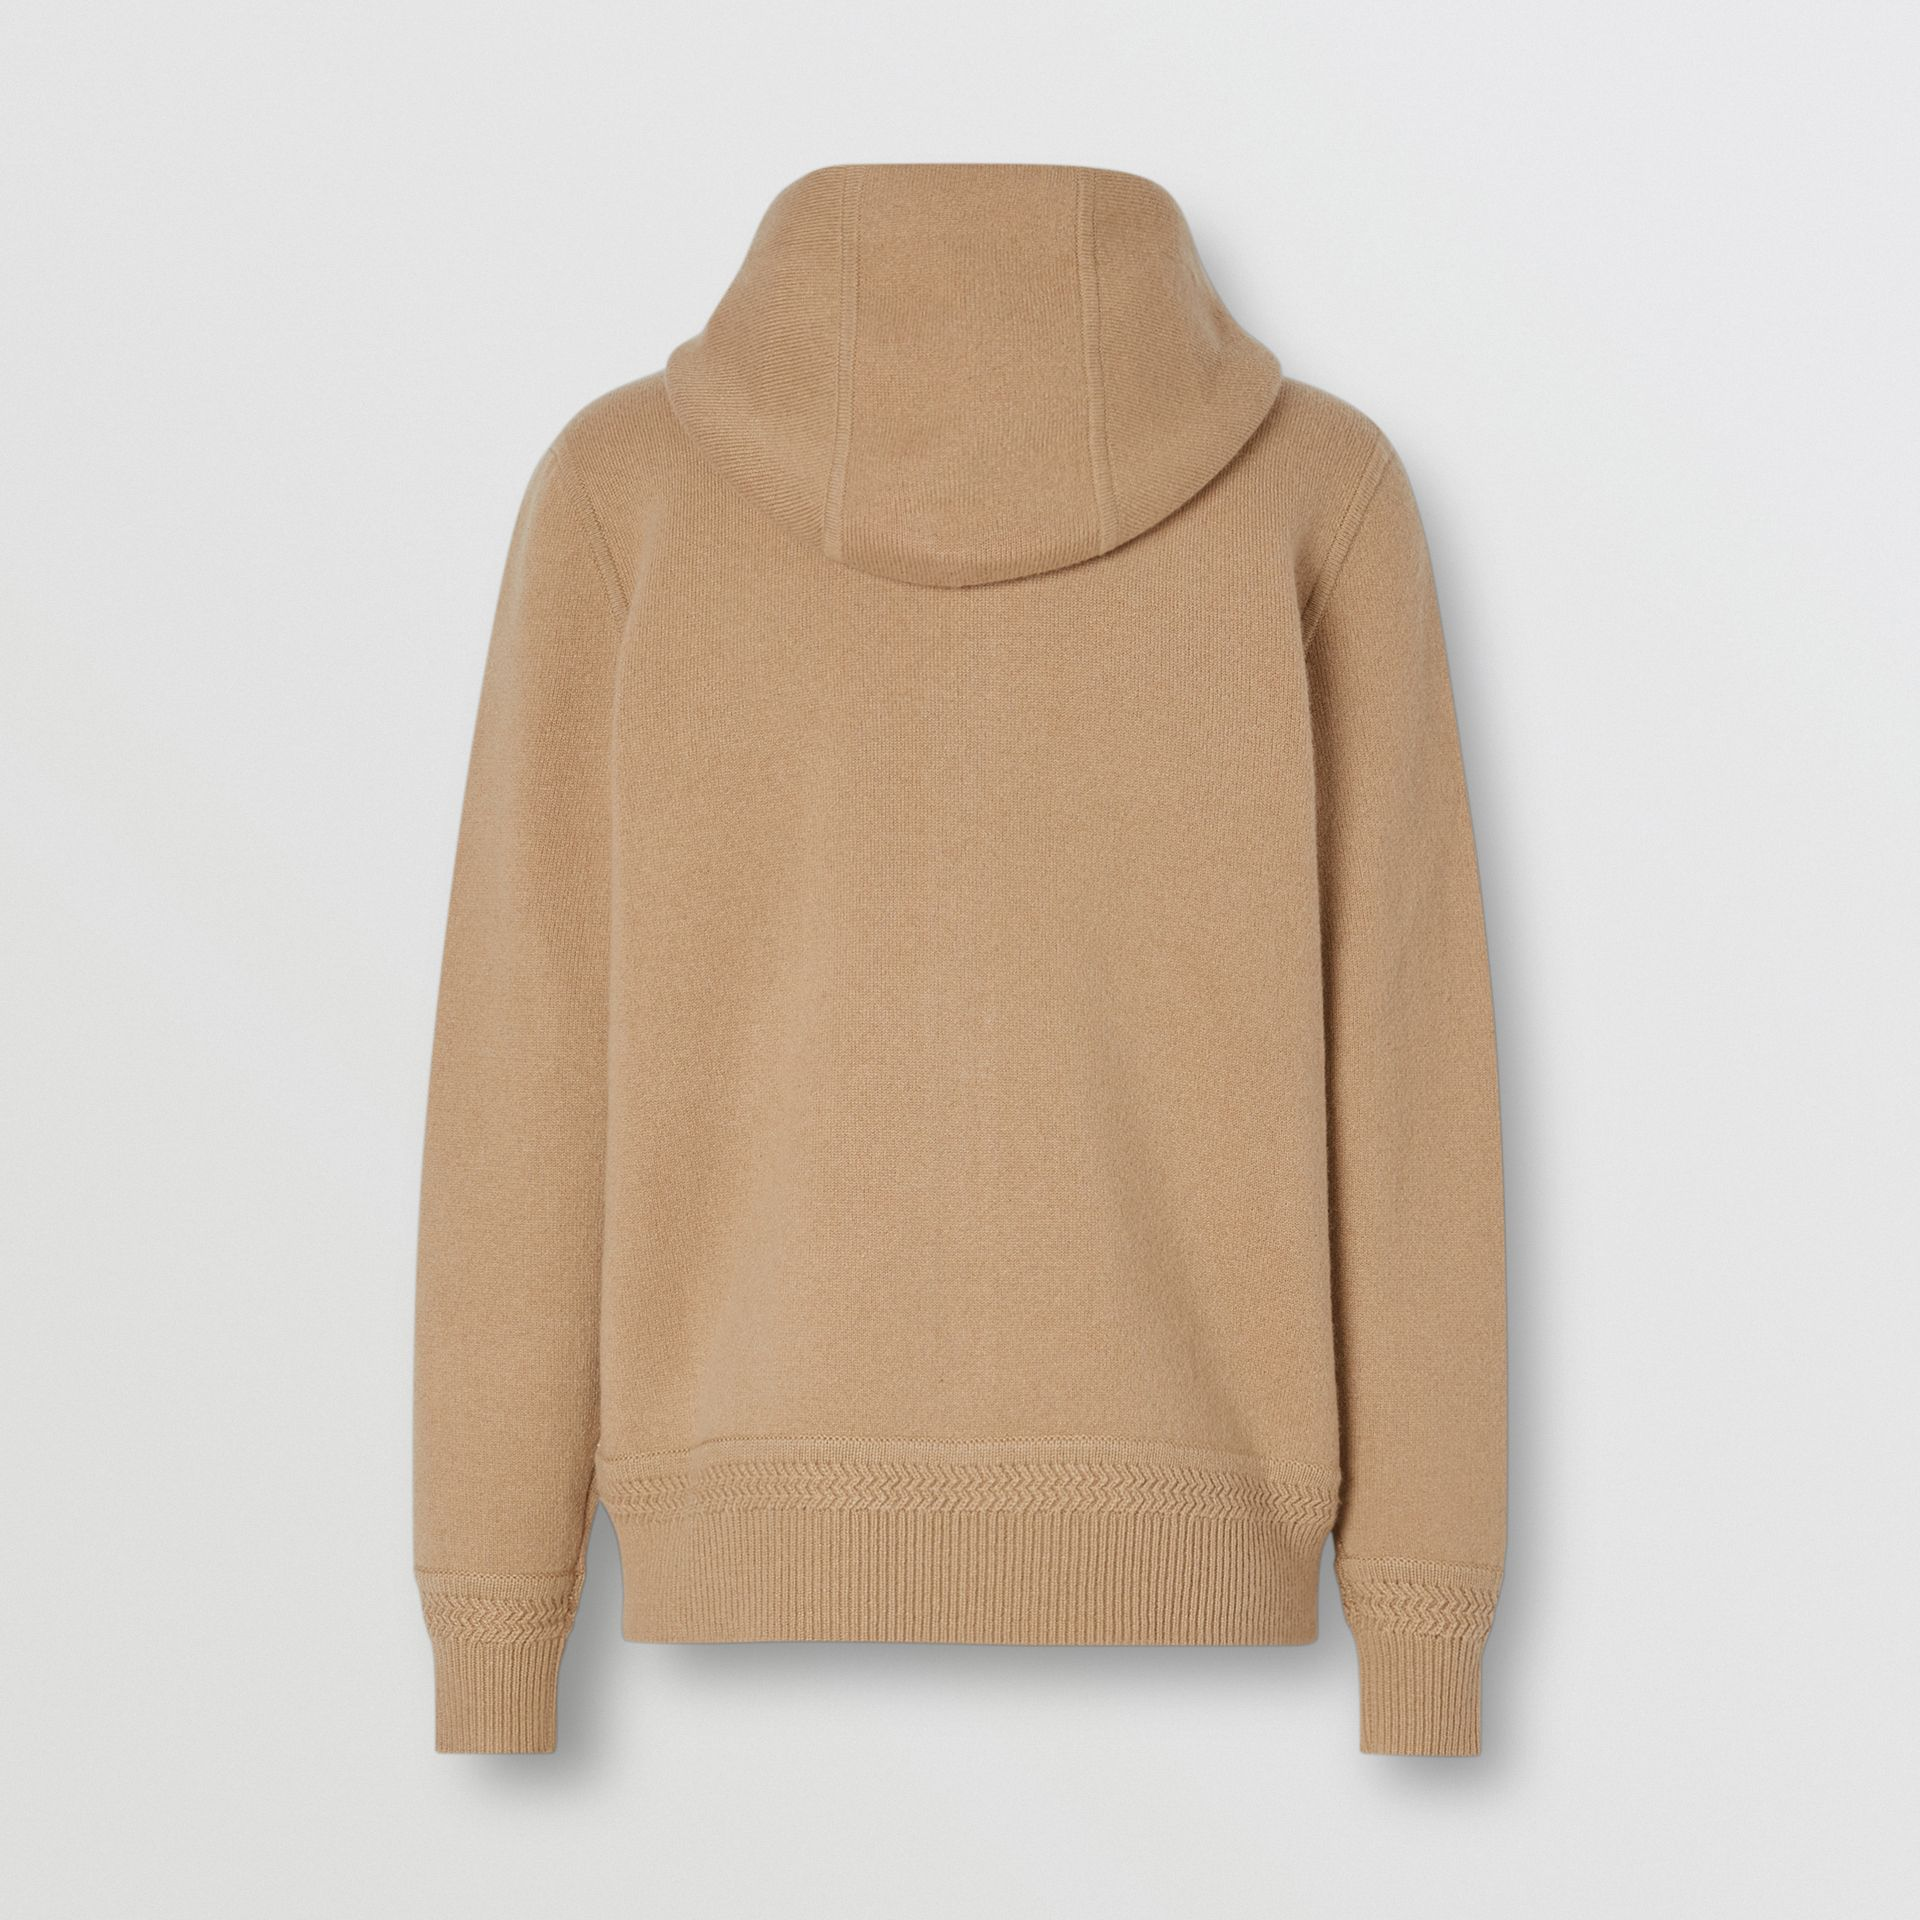 Embroidered Logo Cashmere Hooded Top in Archive Beige - Women | Burberry Hong Kong S.A.R - gallery image 5